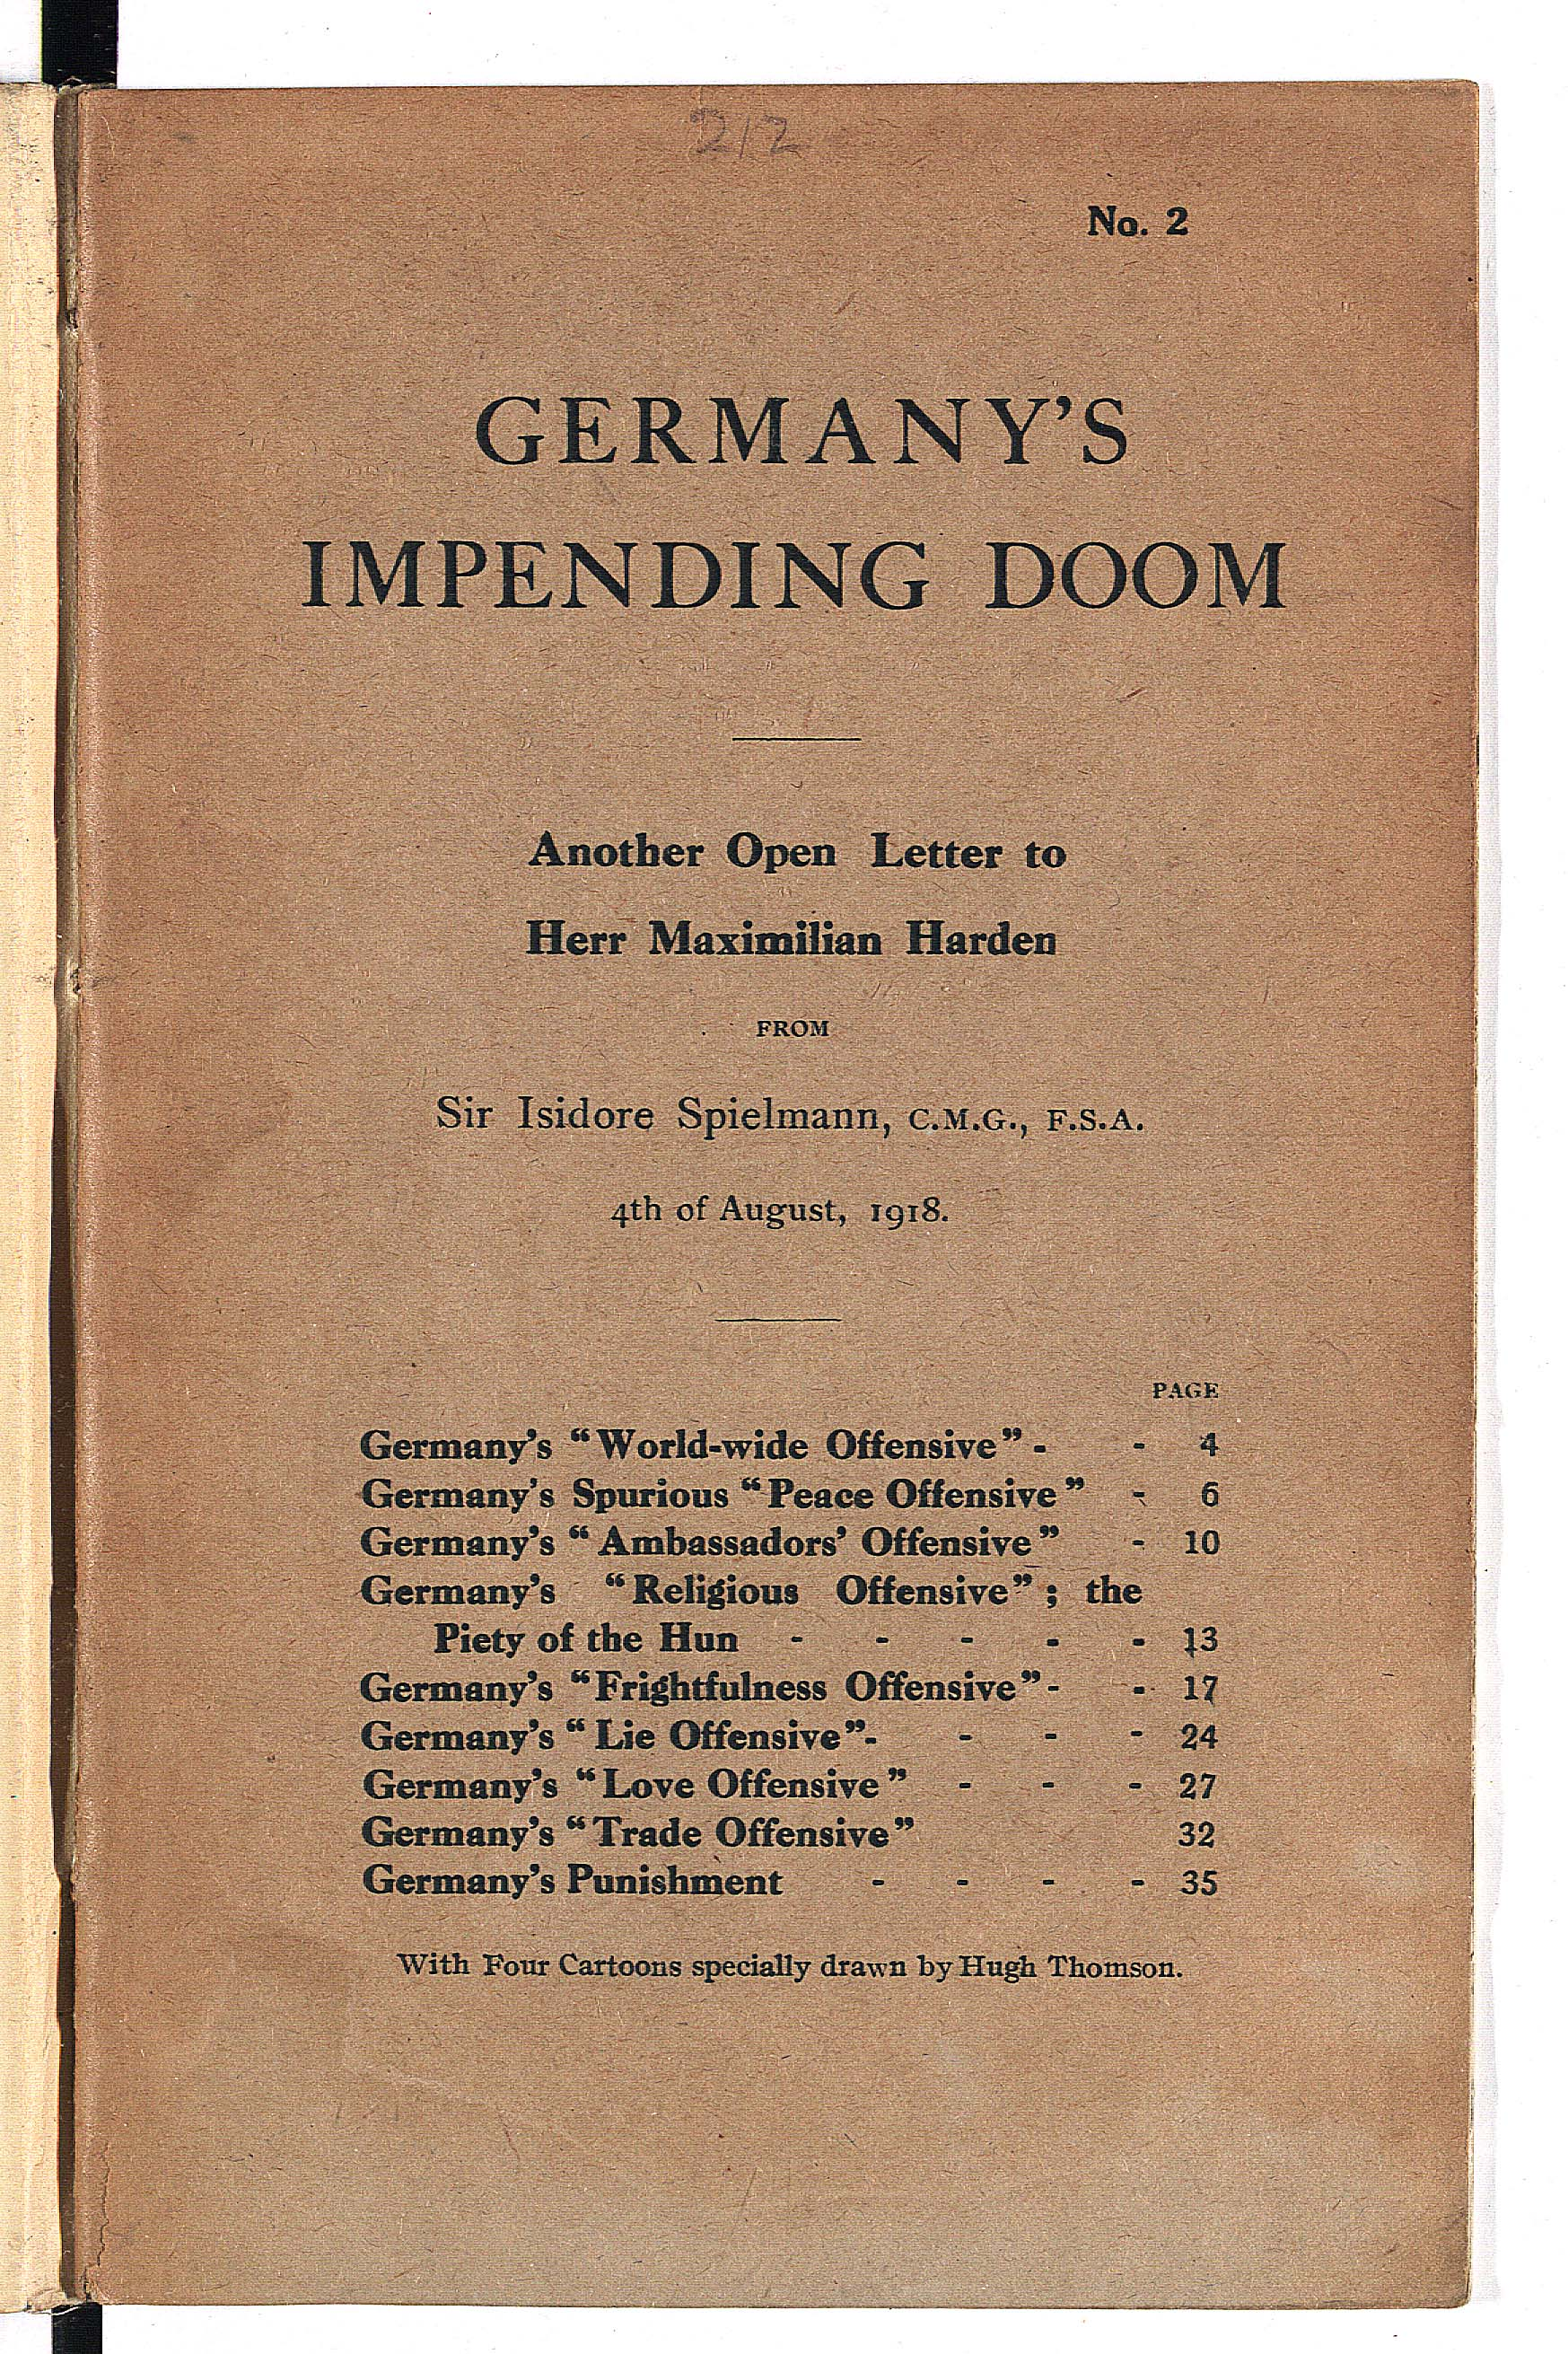 Germany's impending doom. Another open letter to Herr Maximillian Harden, with cartoons by Hugh Thompson. Letter written by Sir Isidore Spielmann